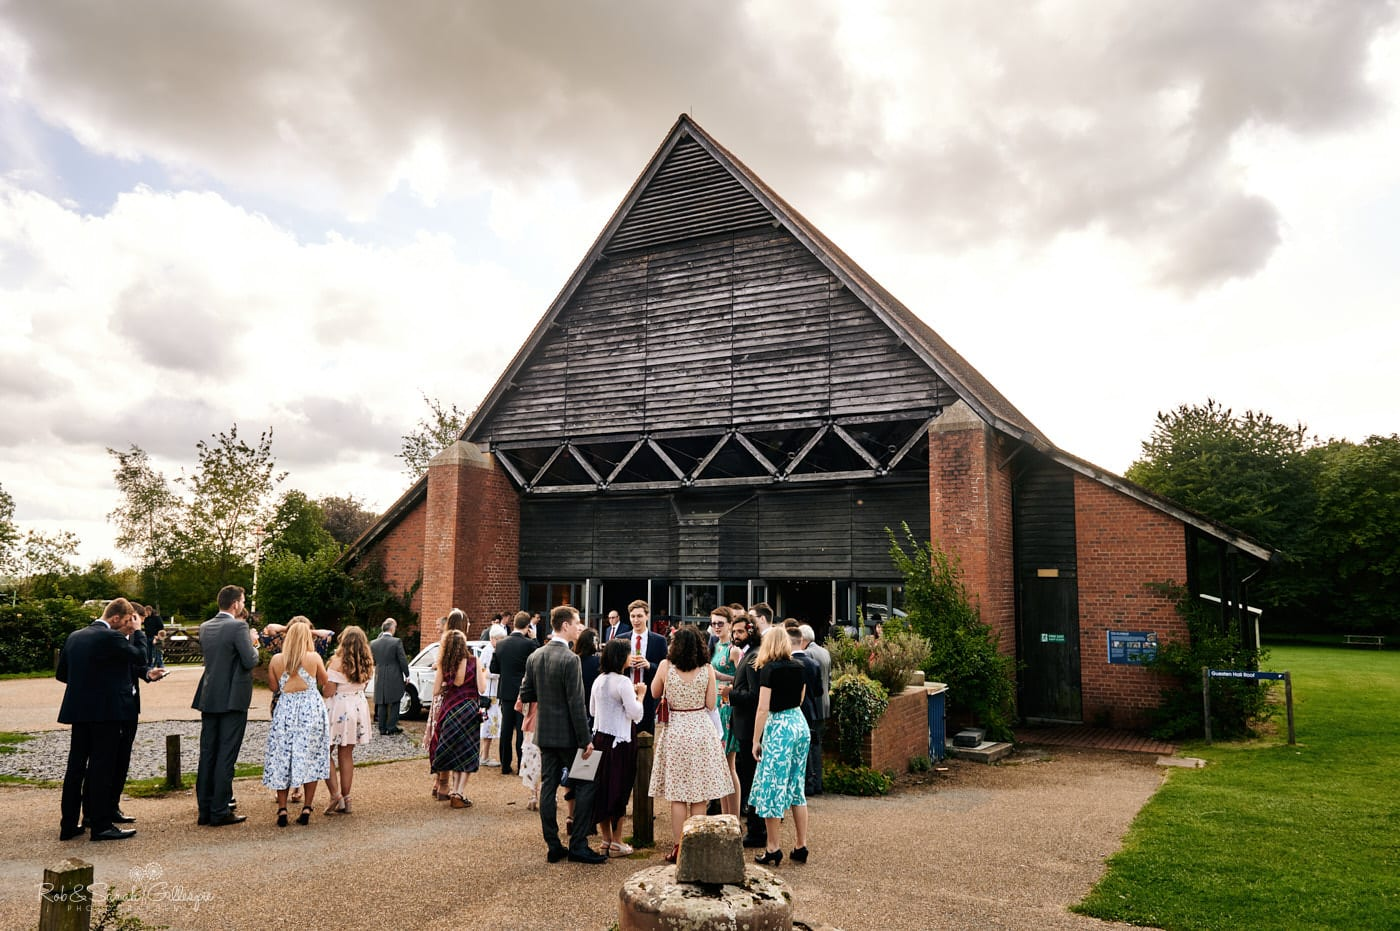 Guests at Avoncroft Museum wedding reception